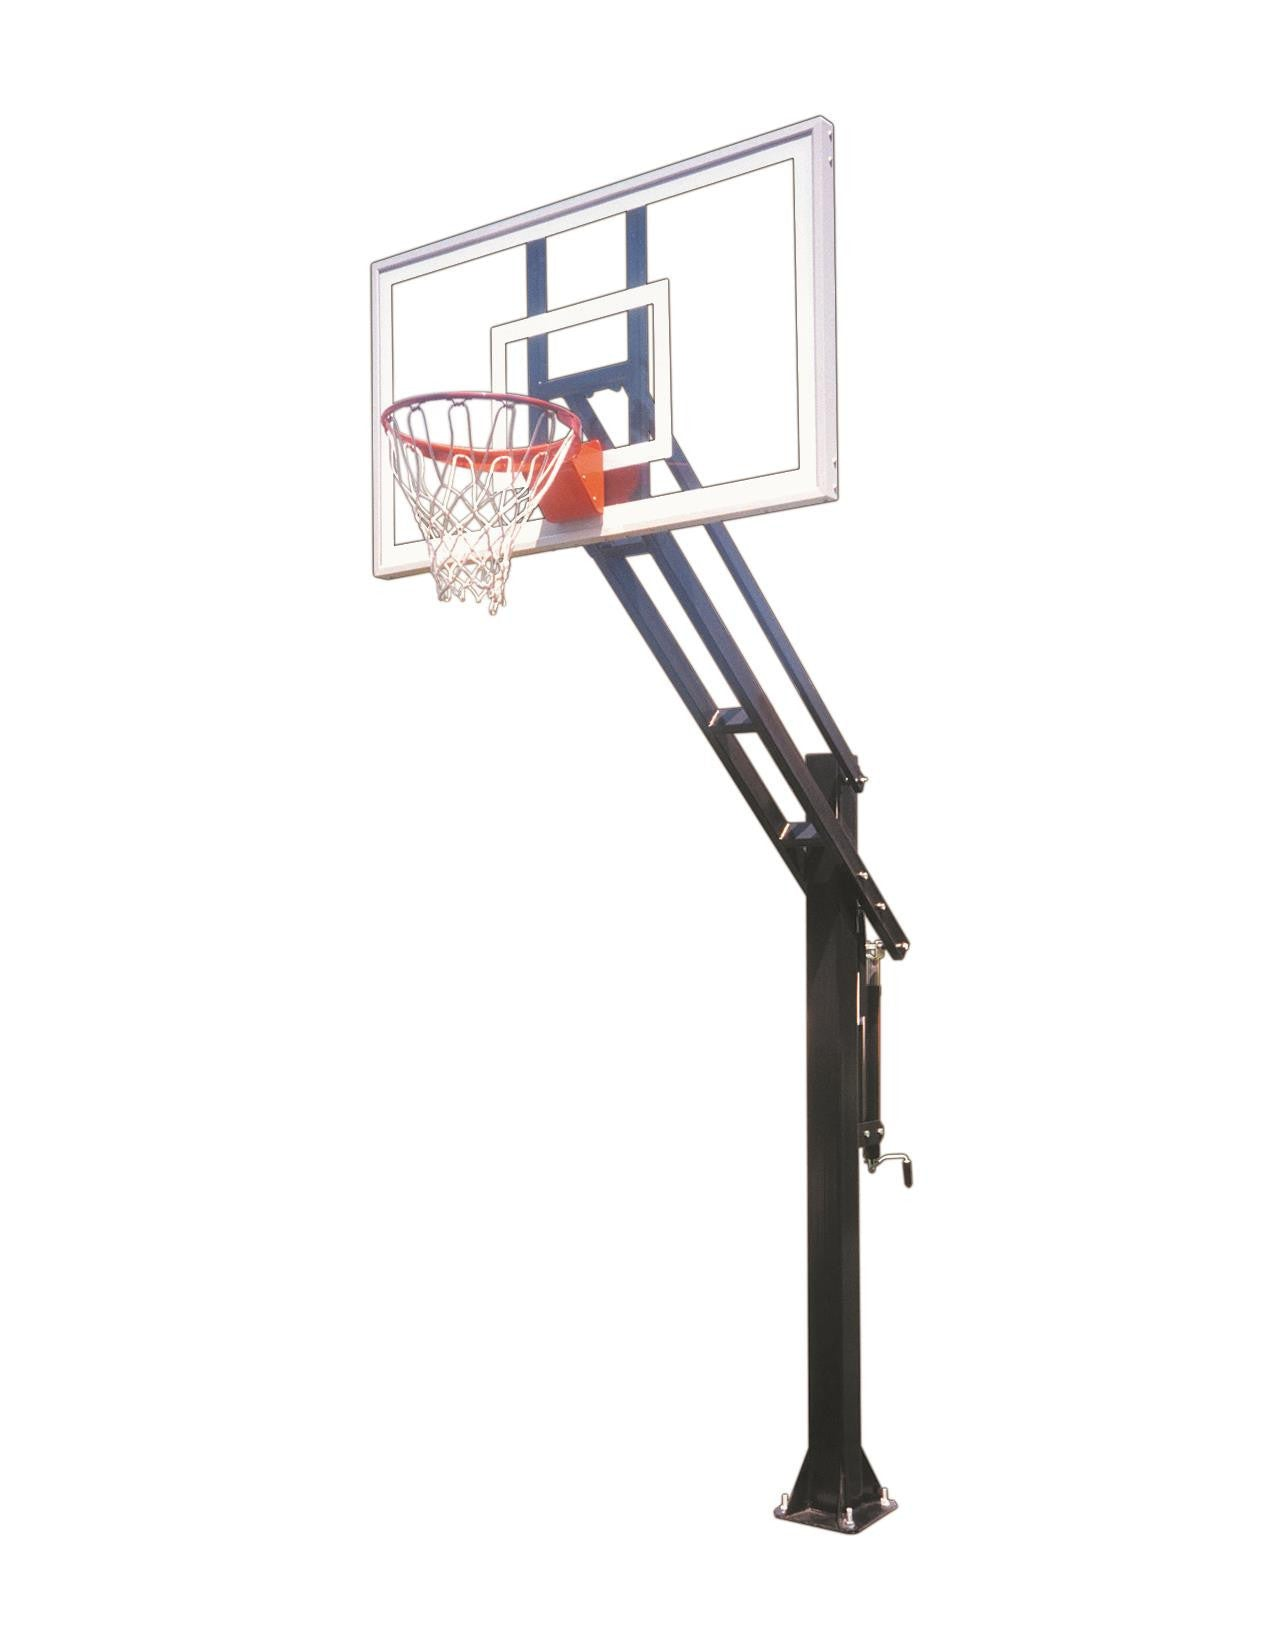 First Team Force Pro In Ground Outdoor Adjustable Basketball Hoop 60 inch Tempered-Glass